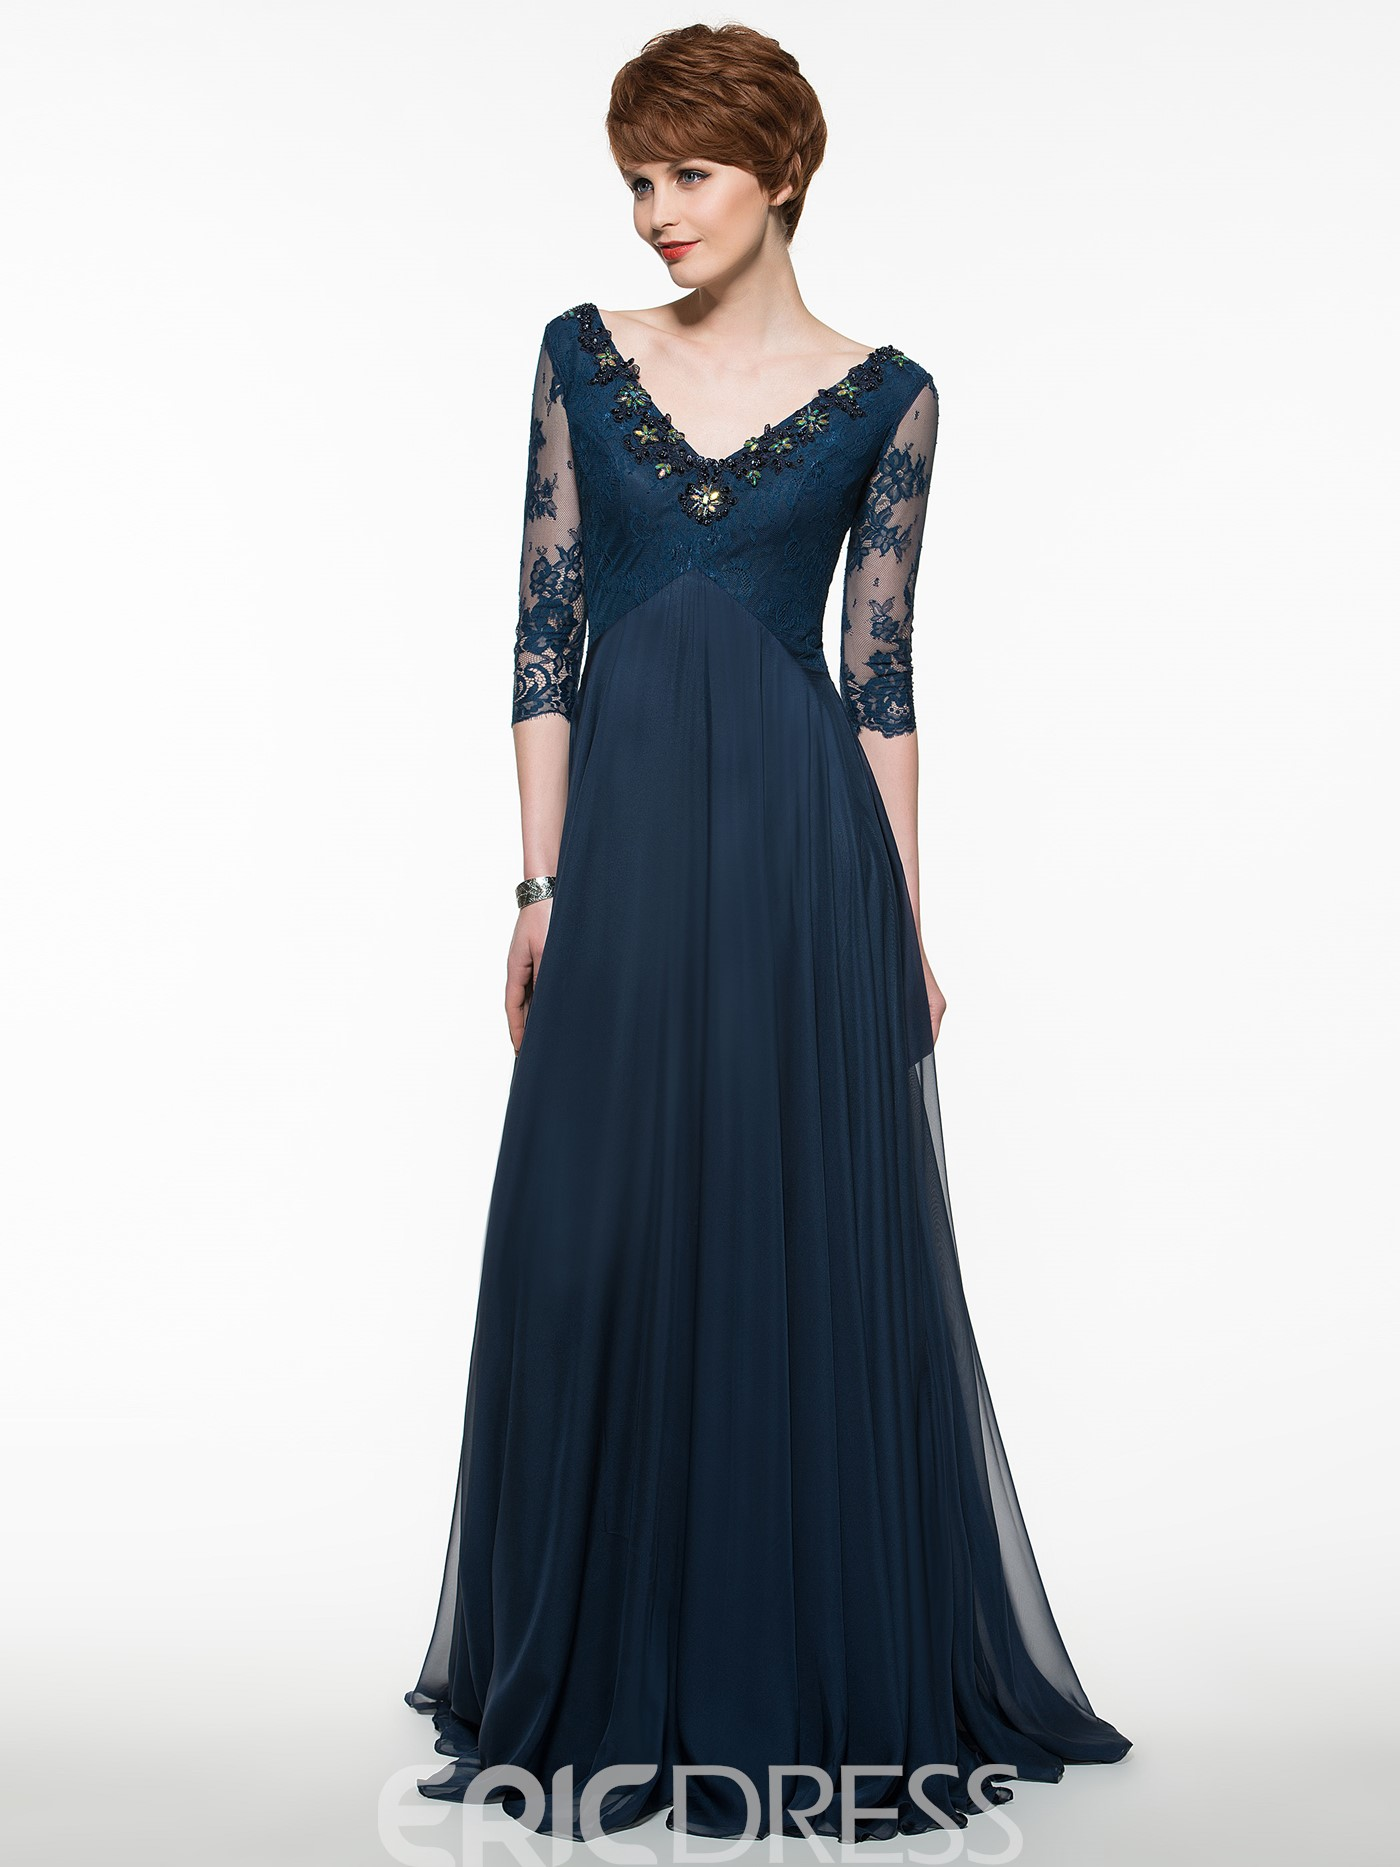 Ericdress Beautiful V Neck A Line Long Mother Of The Bride Dress With Sleeves